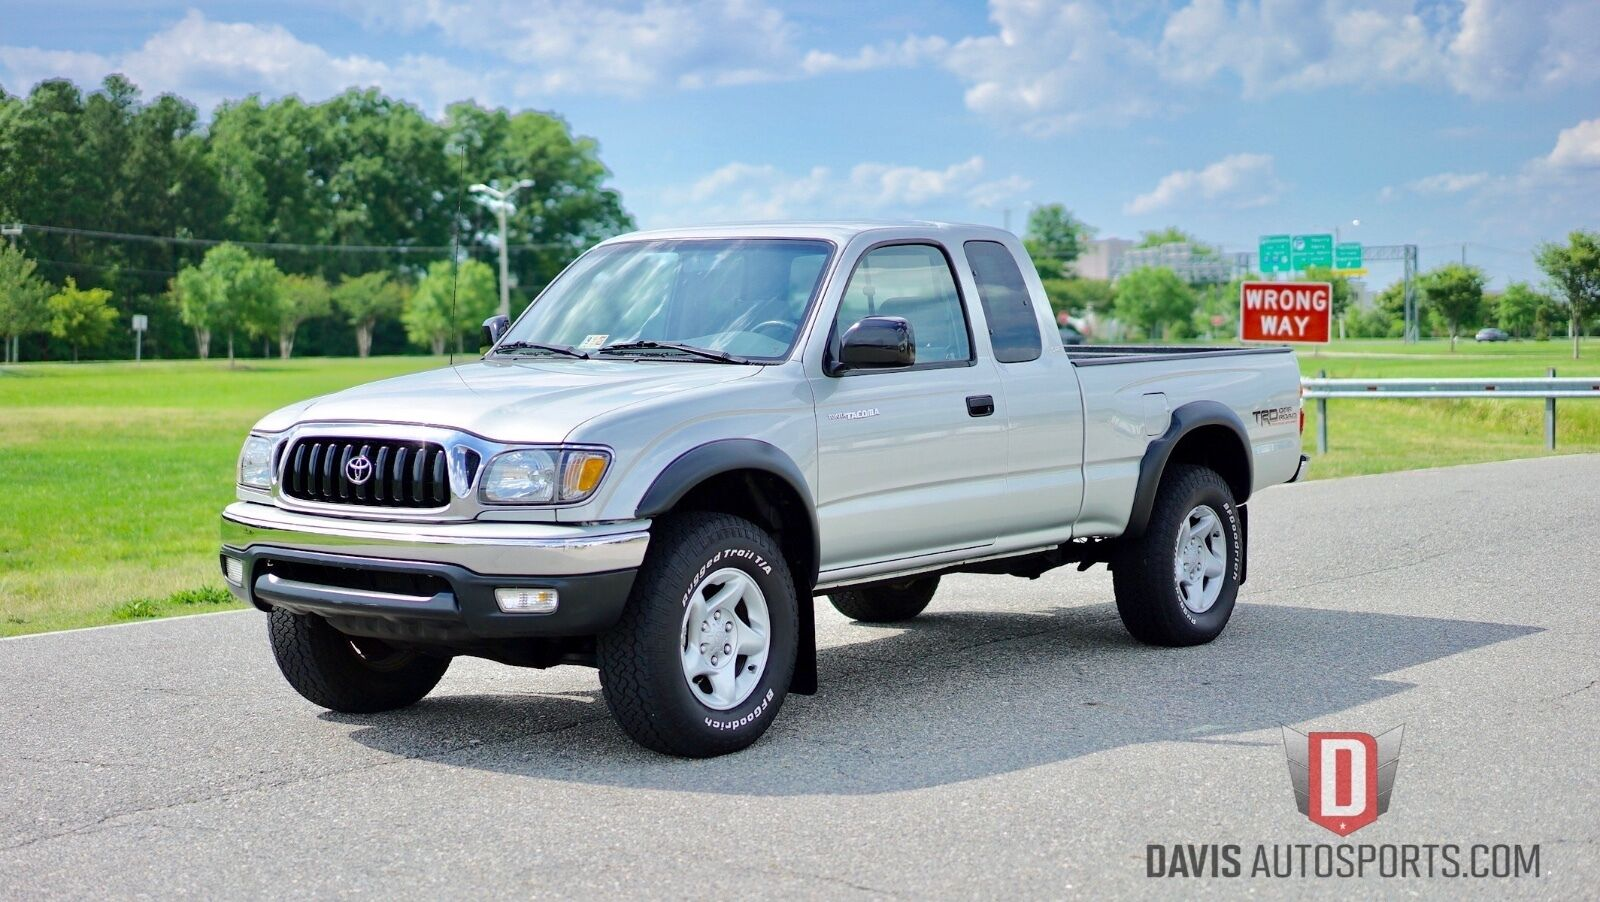 toyota tacoma trd 4x4 1 owner only 71k miles nicest on ebay must see used toyota. Black Bedroom Furniture Sets. Home Design Ideas